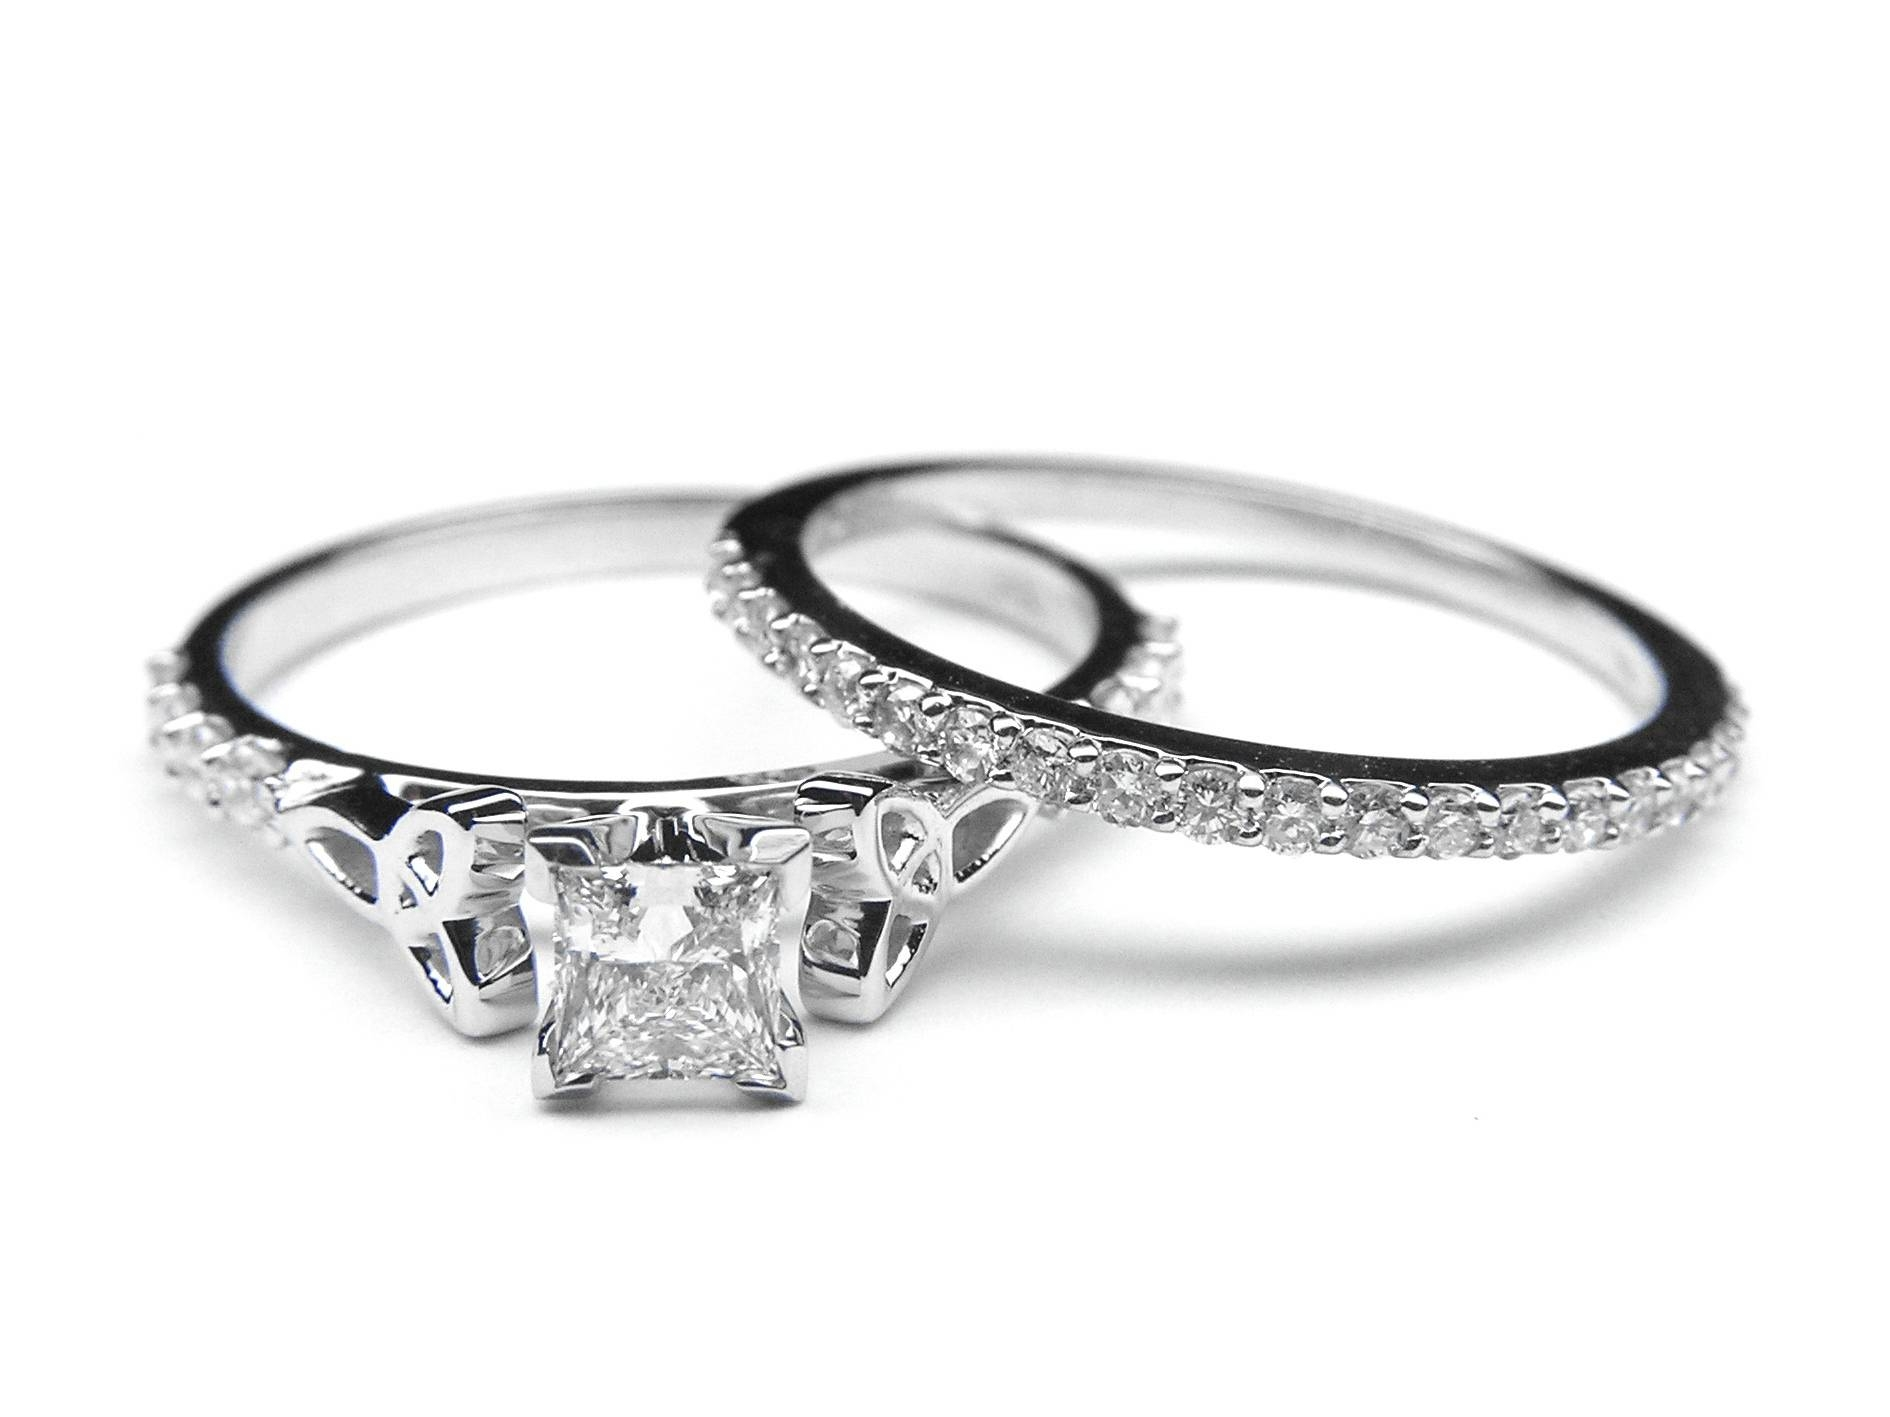 Celtic – Engagement Rings From Mdc Diamonds Nyc Pertaining To Celtic Engagement Rings (View 3 of 15)